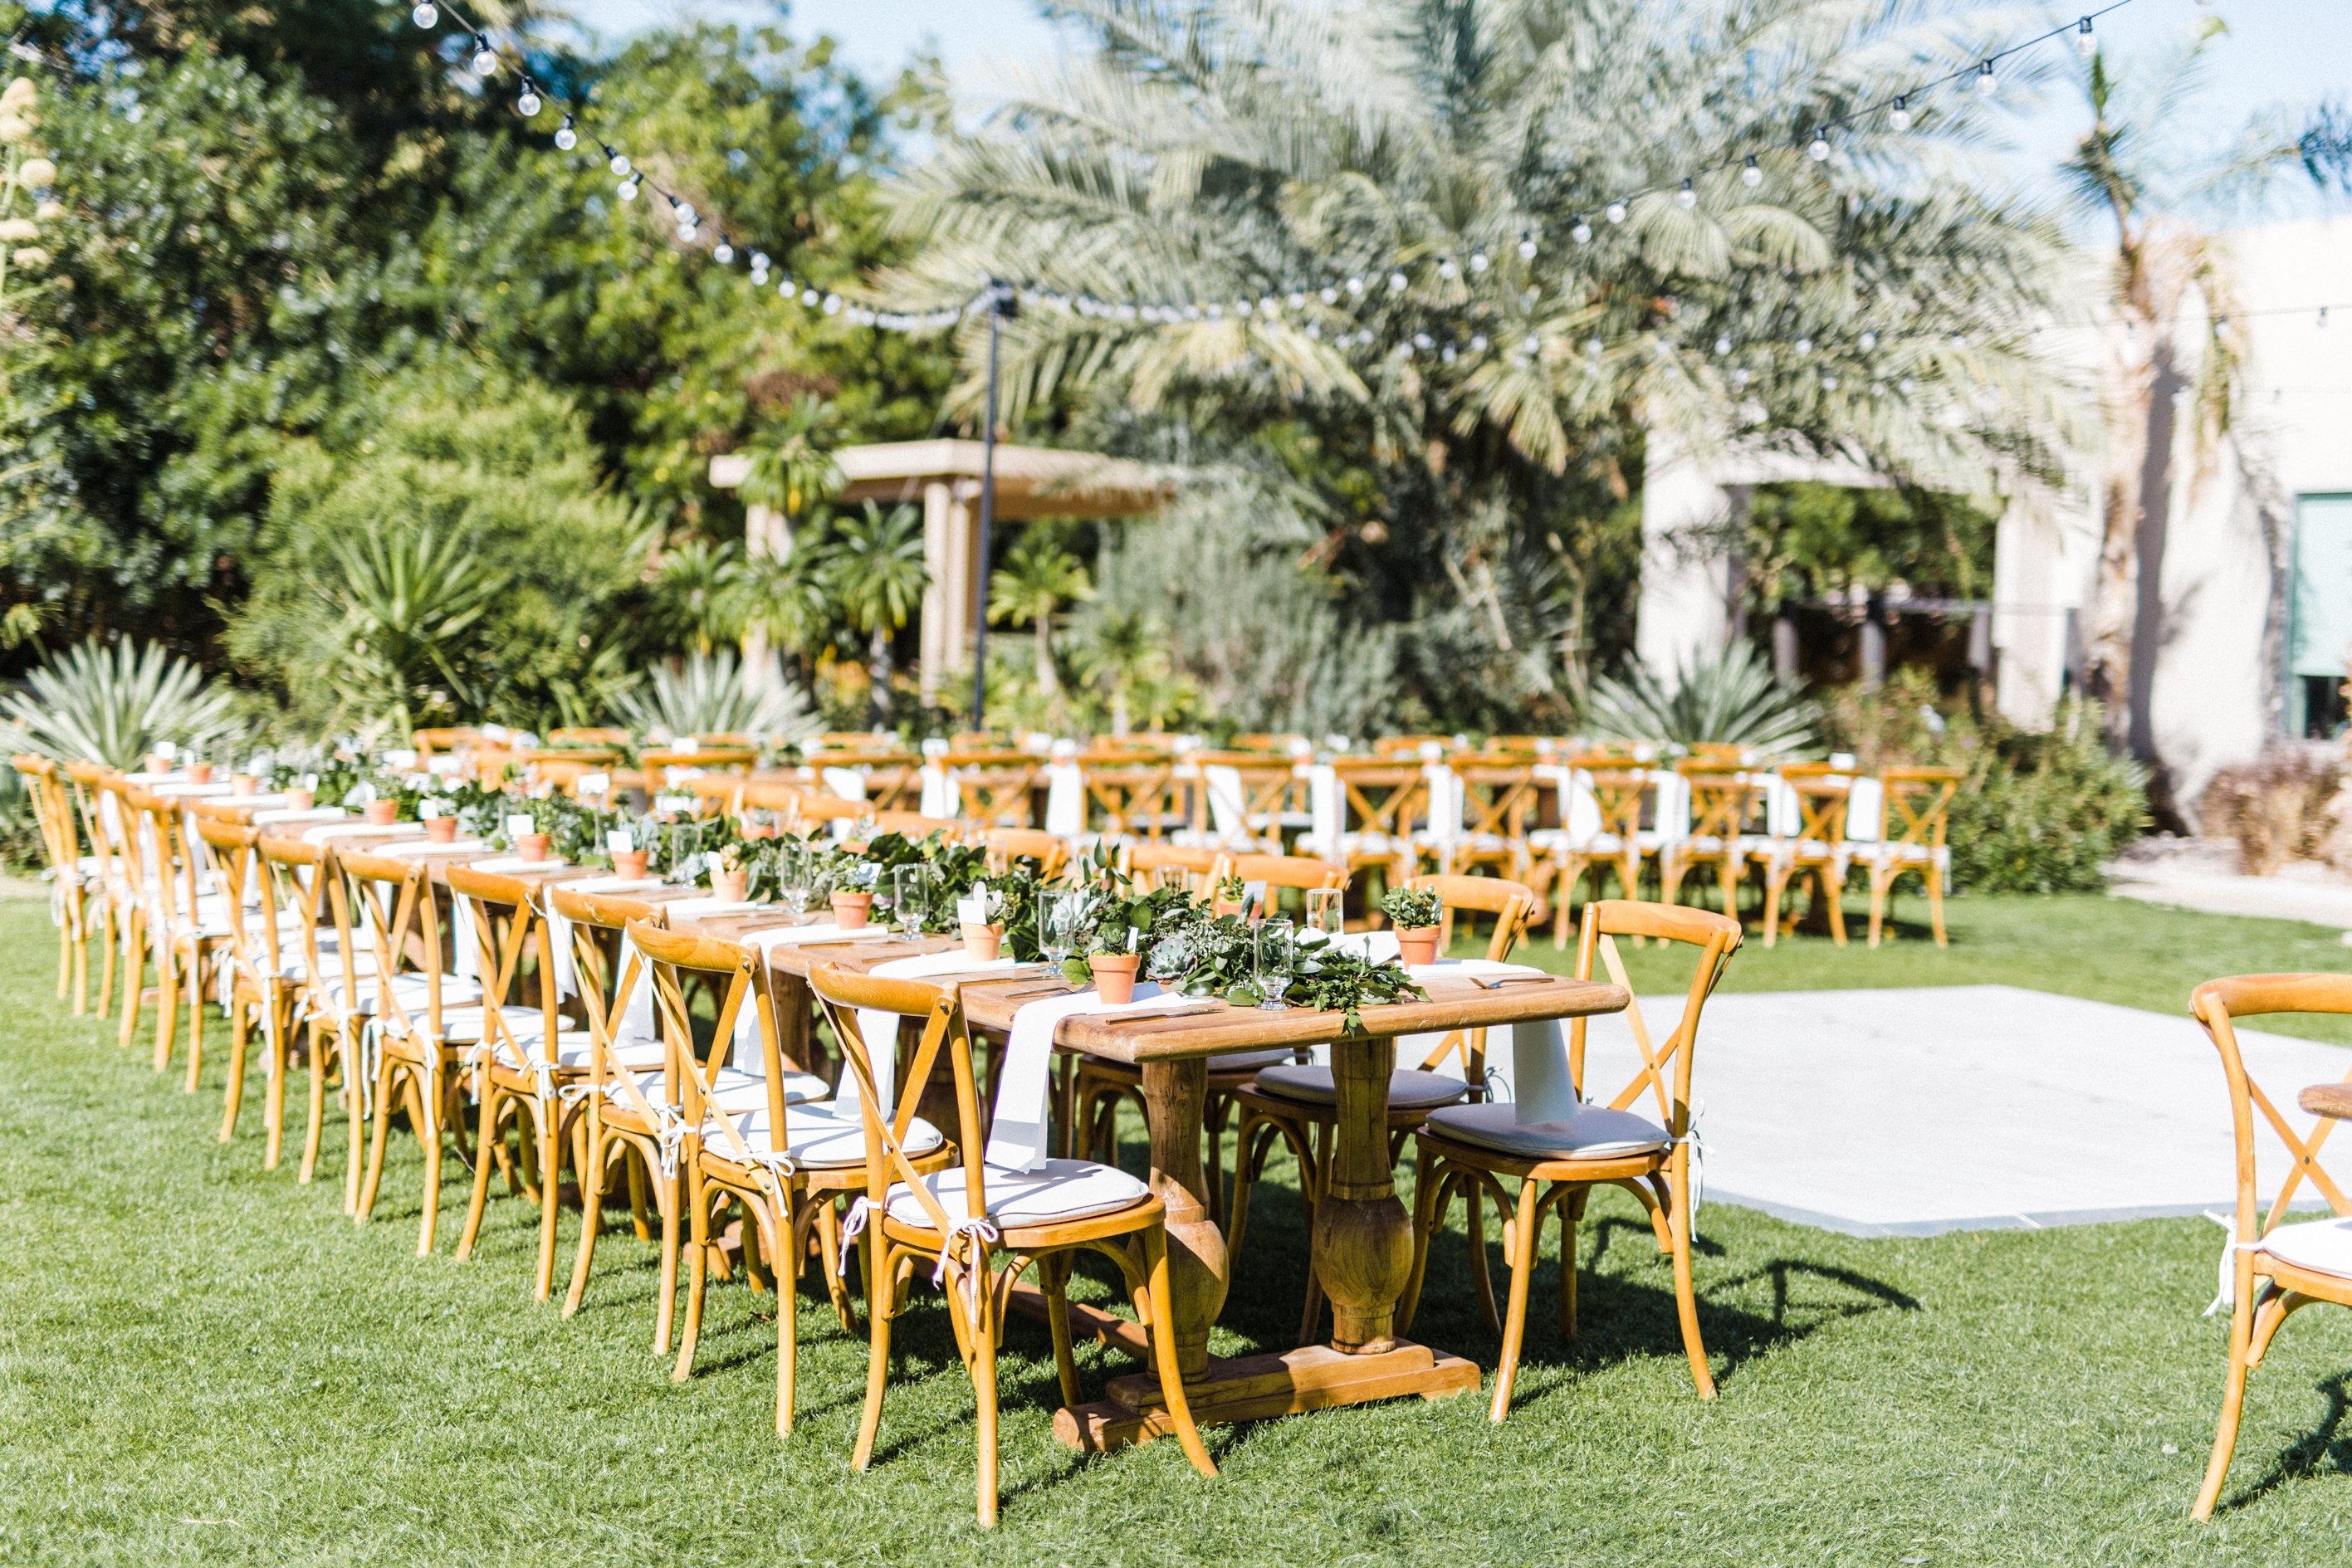 Wedding Reception with Wood Tables